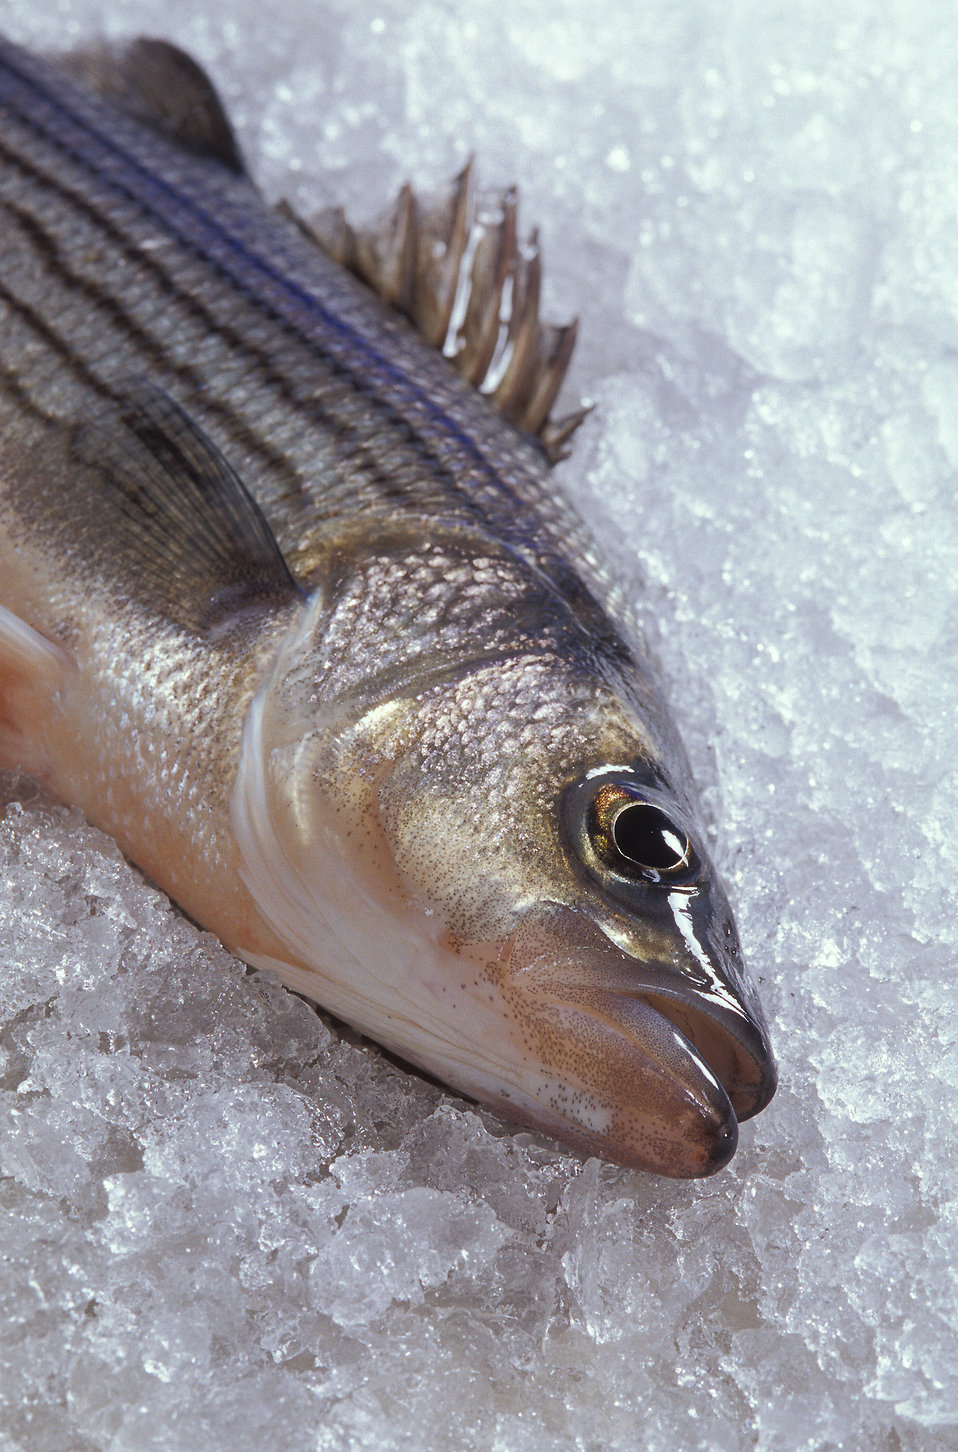 A hybrid striped bass on ice : Free Stock Photo